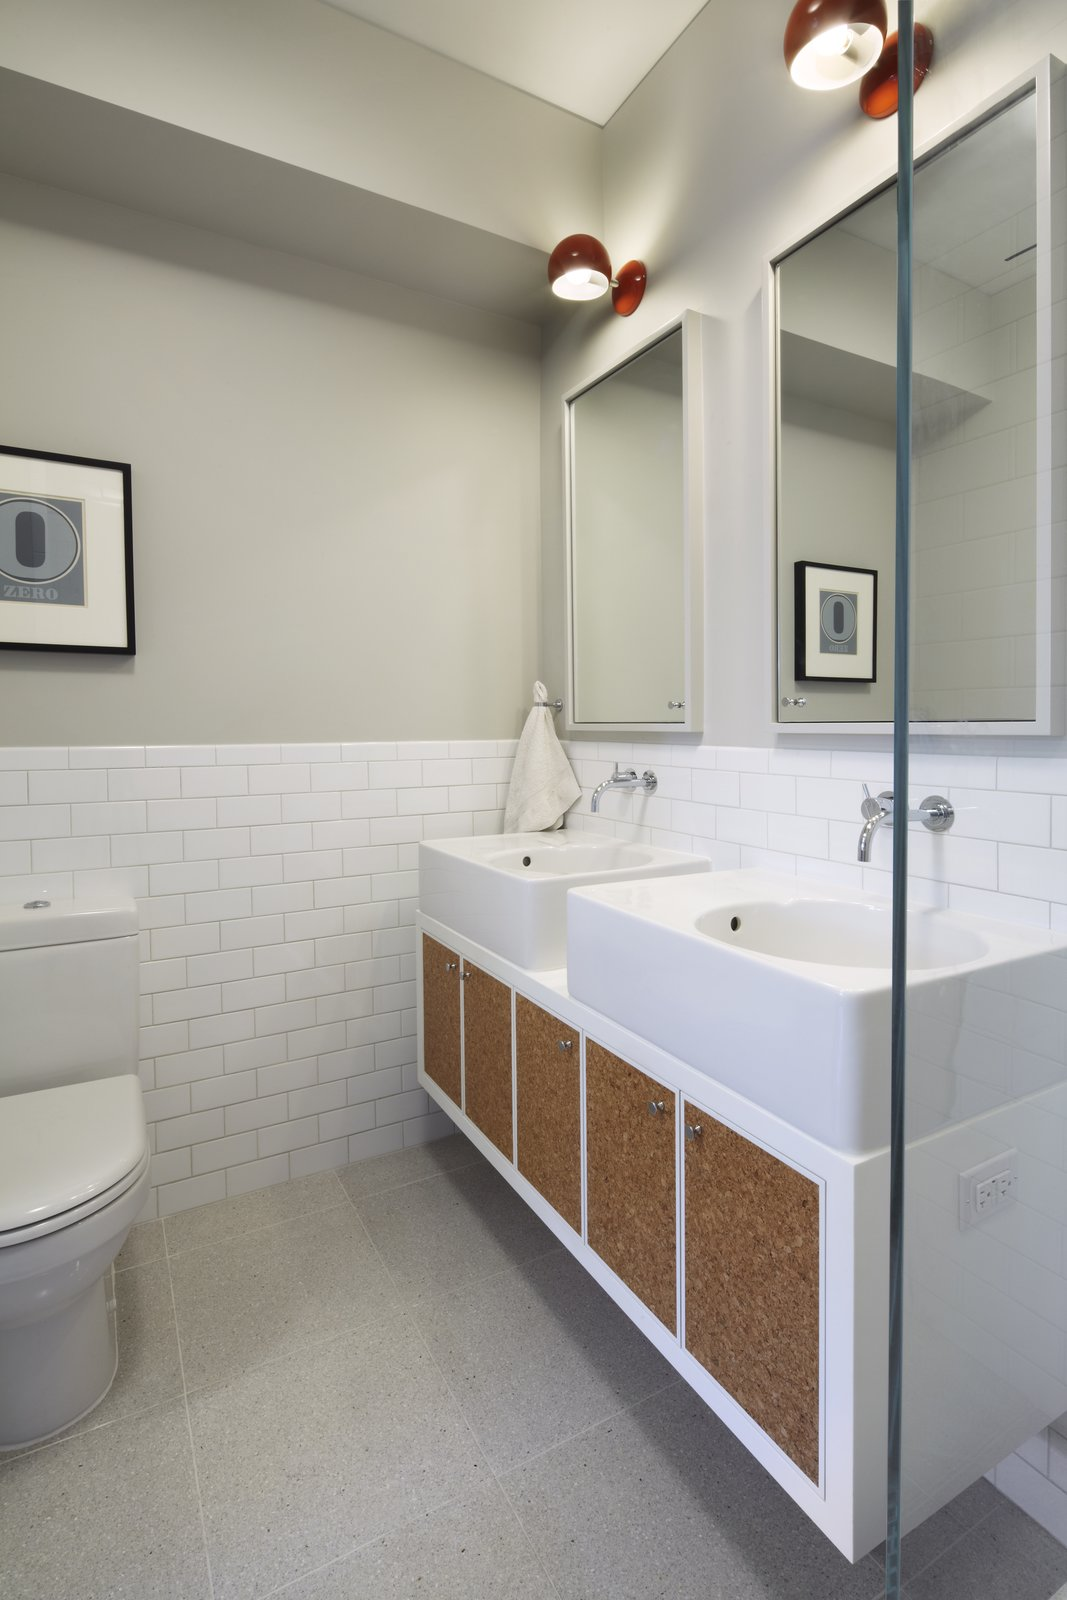 A photo of the double vanity in the children's bathroom.  The vanity was custom made from Corian with Scola sinks from Duravit and one of our favorite faucets from Vola designed by Arne Jacobsen.  The inset panels are natural cork with a wax finish.  White Street Residence by pulltab